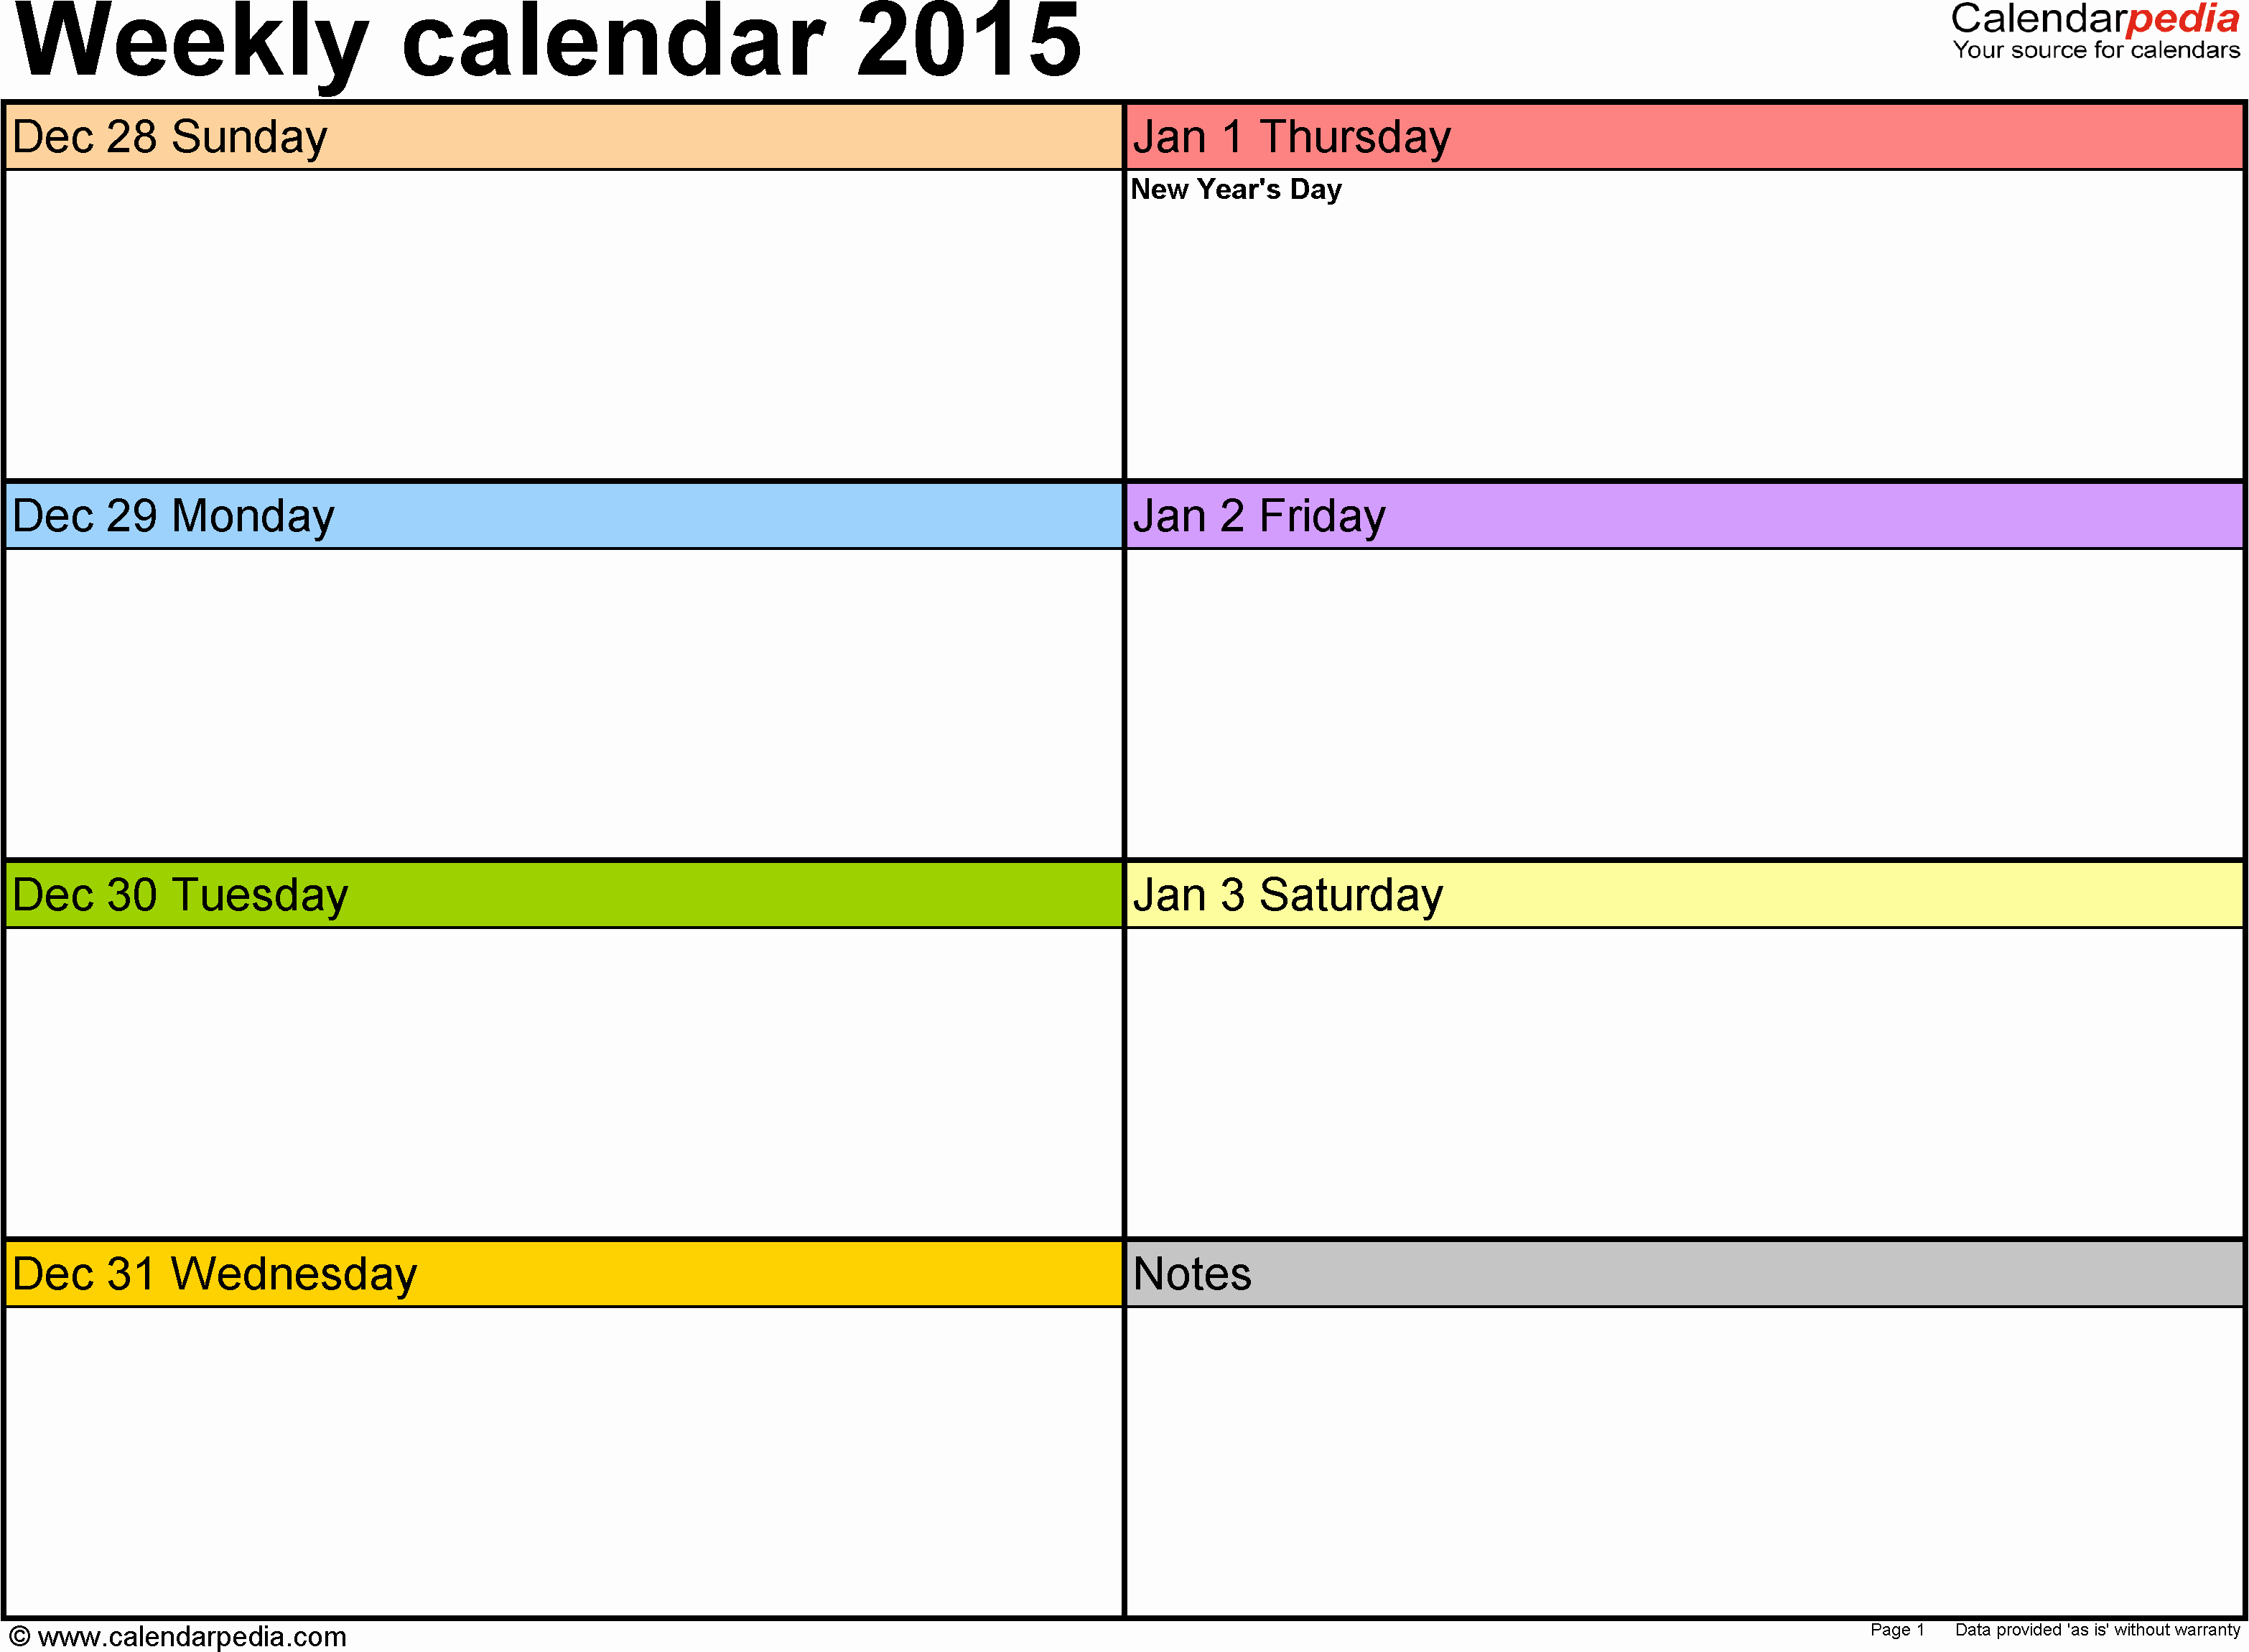 7 Day Schedule Template Excel Elegant Weekly Calendar 2015 for Excel 12 Free Printable Templates